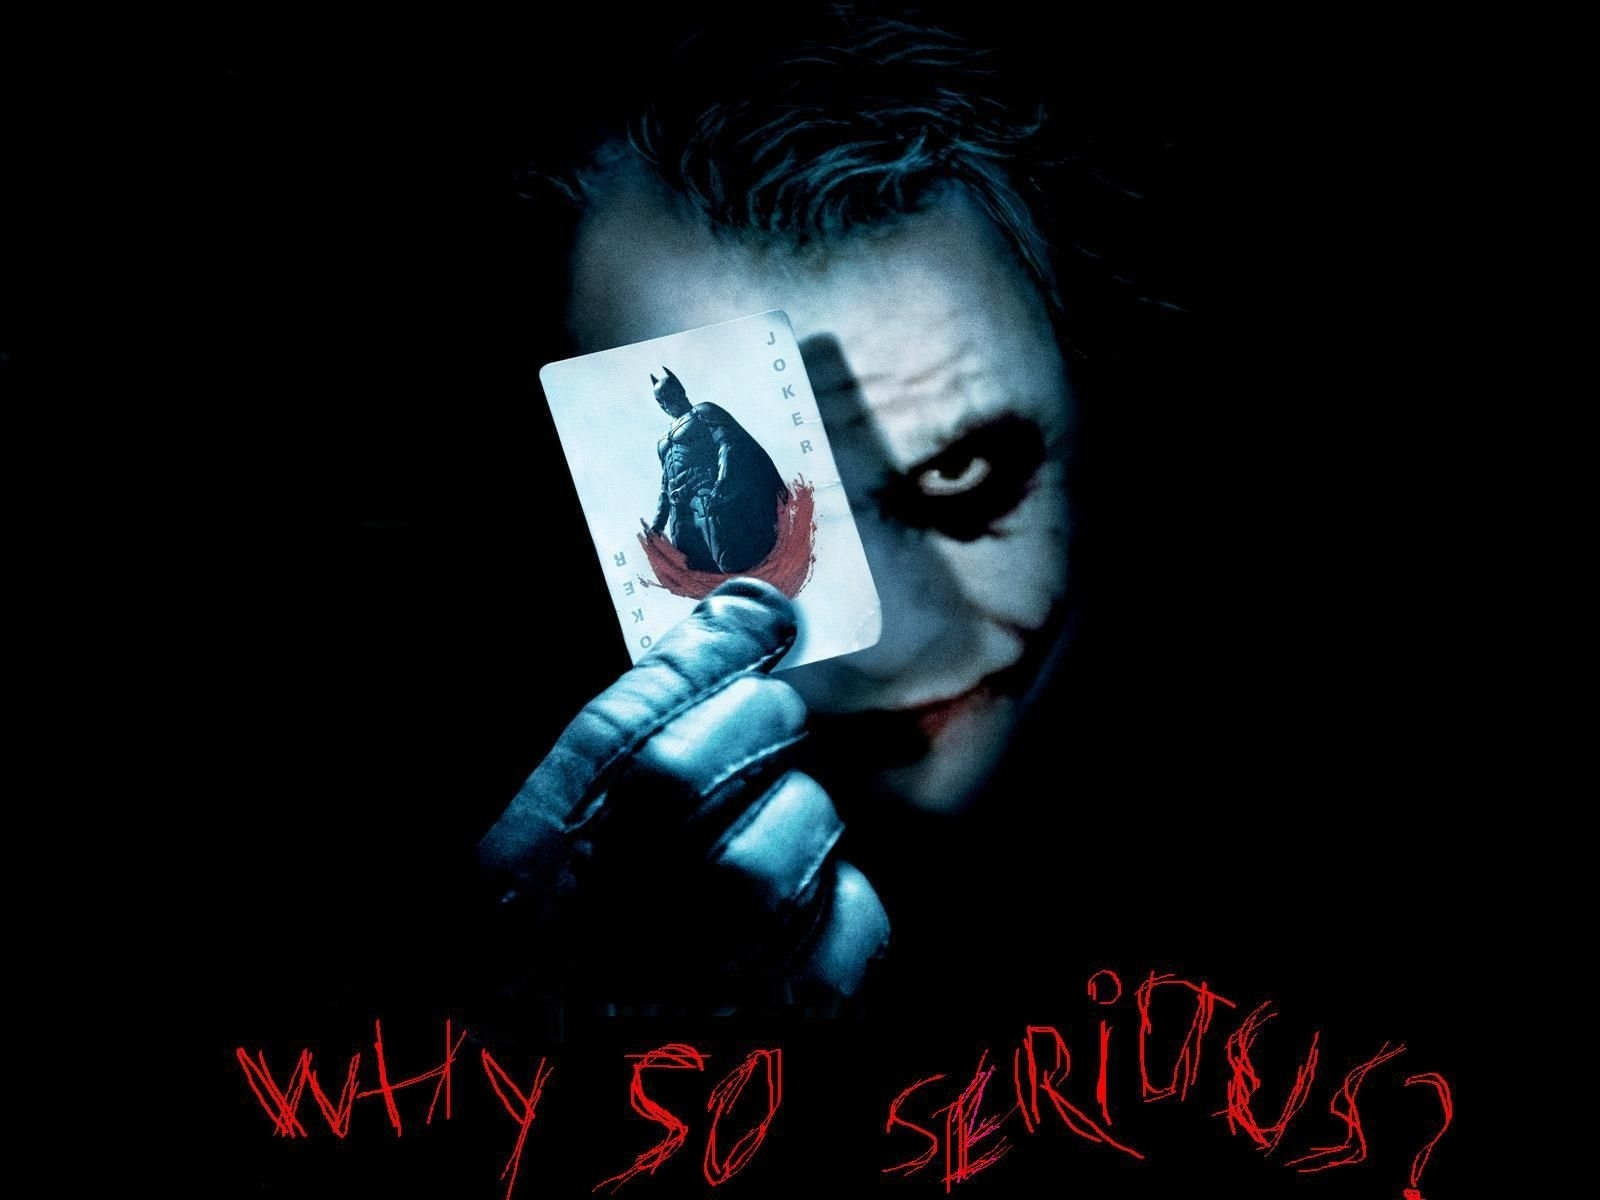 joker why so serious wallpapers - wallpaper cave | adorable